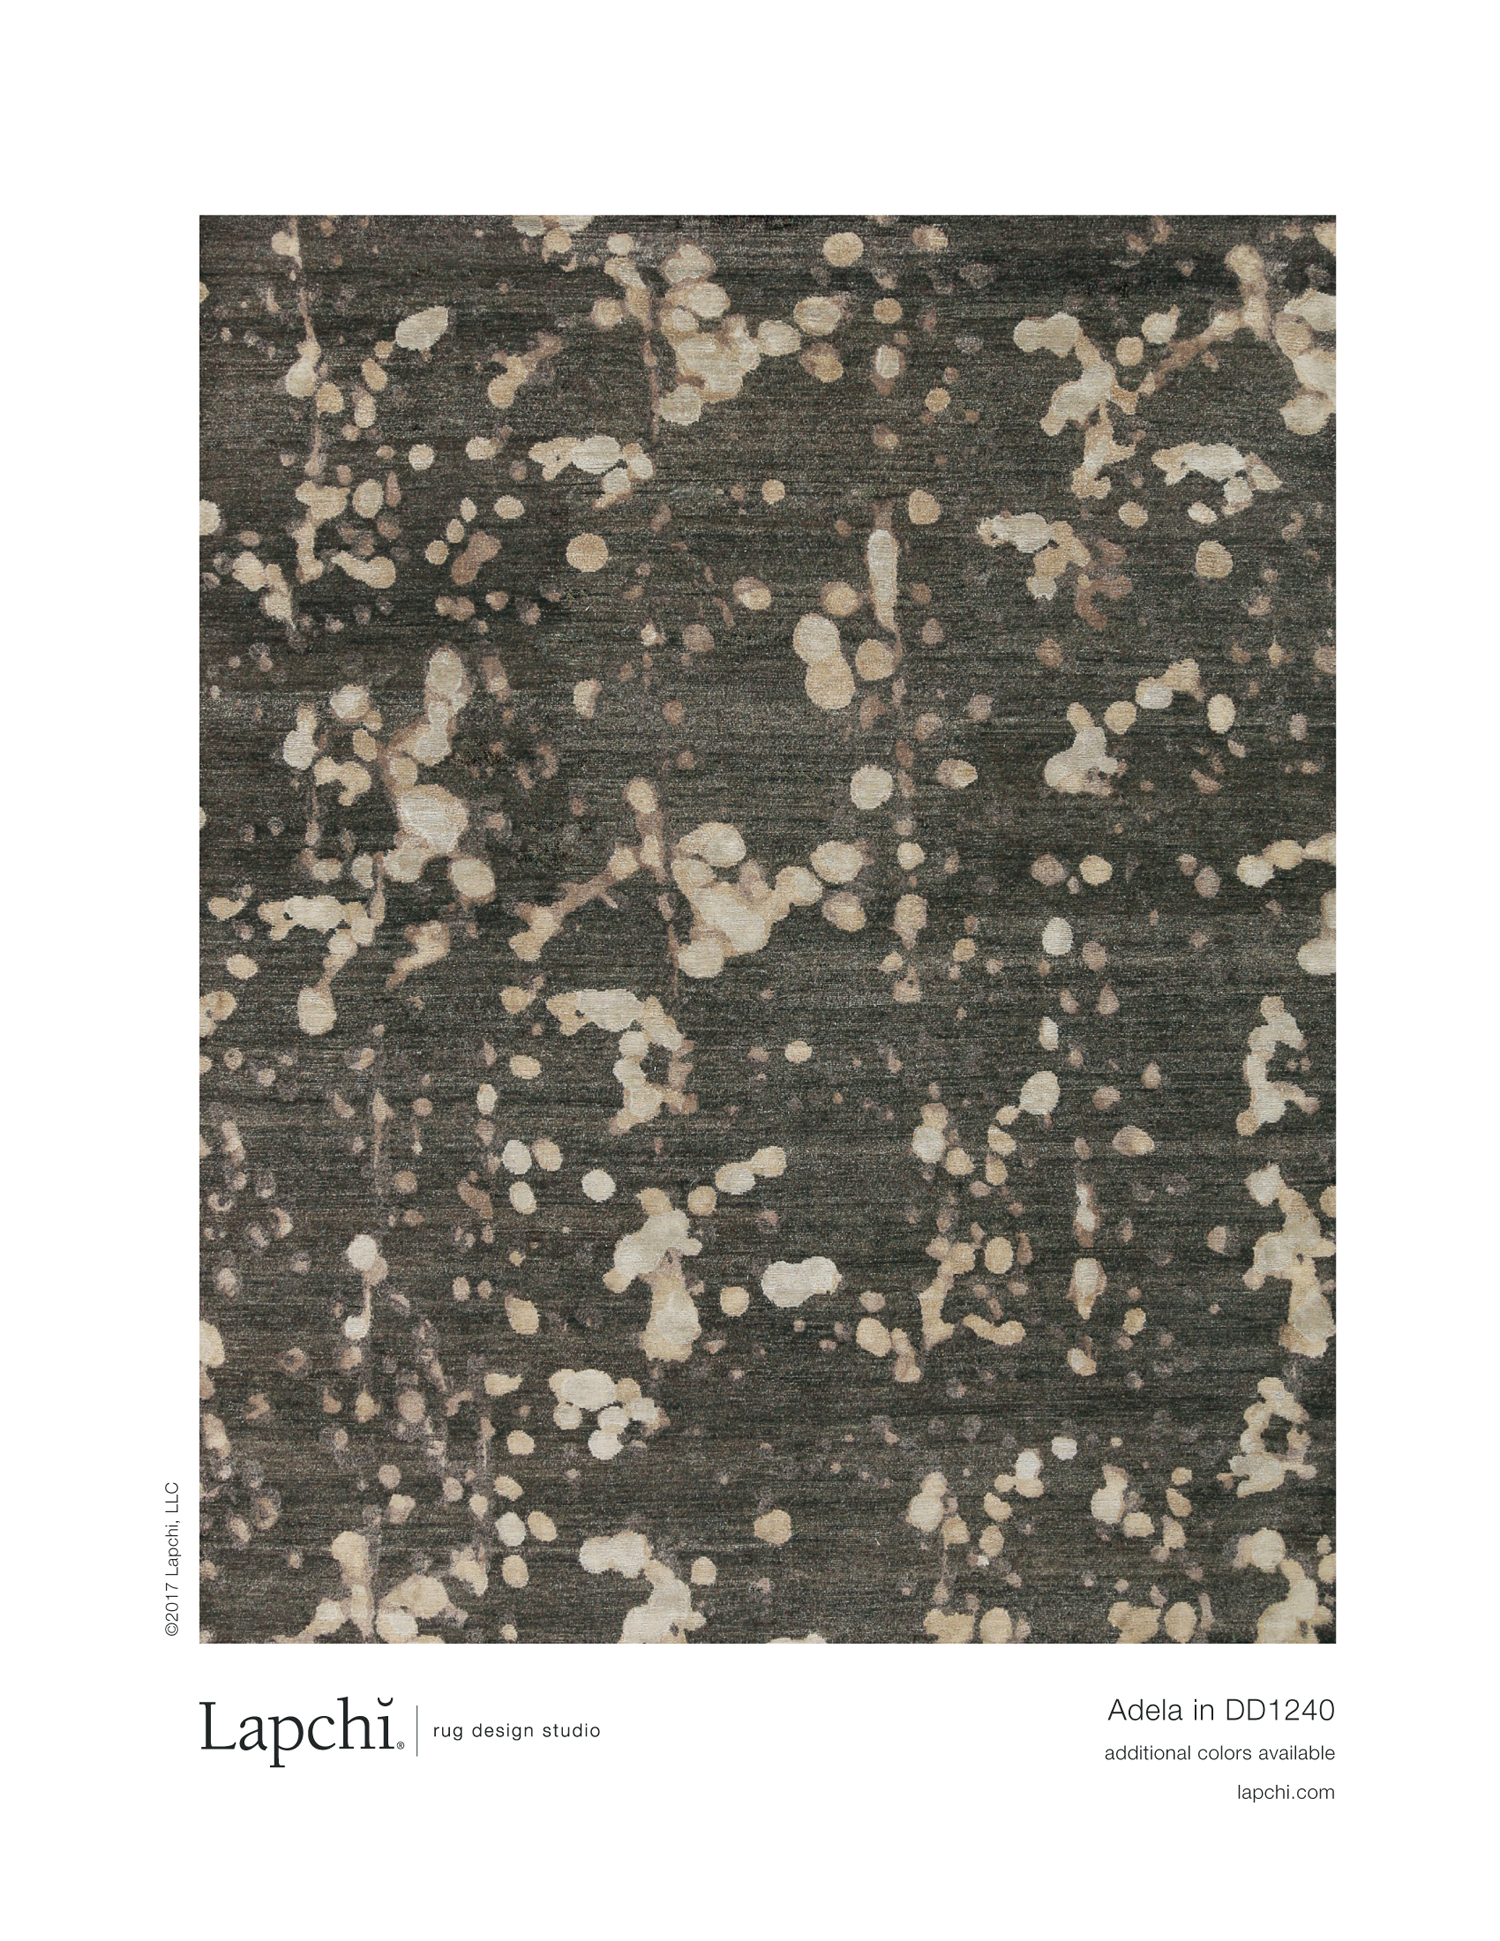 Adela area rug from Lapchi rug design studio.